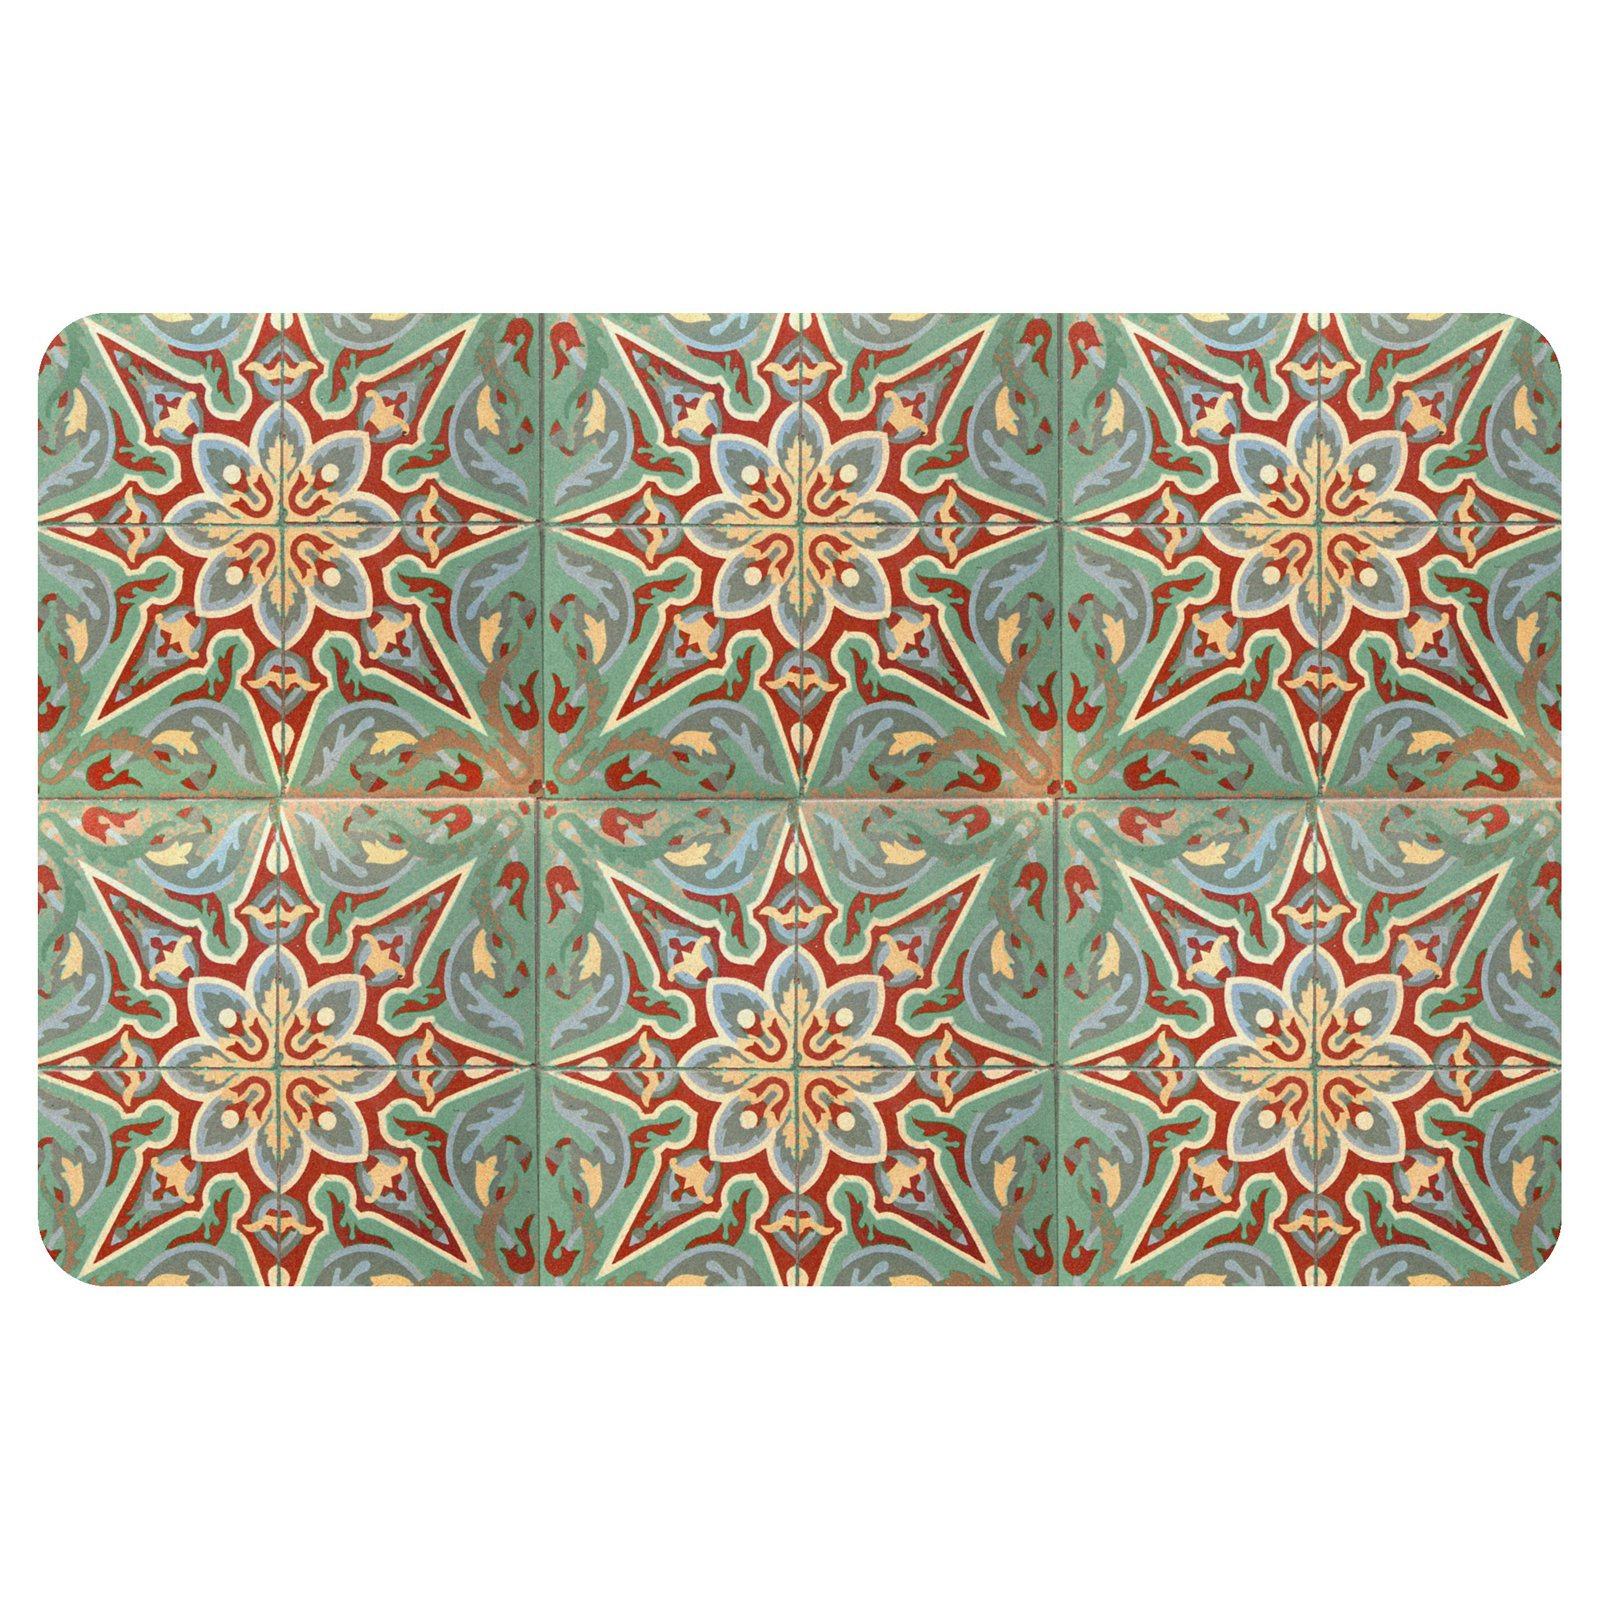 Bungalow Flooring Argana Star Doormat